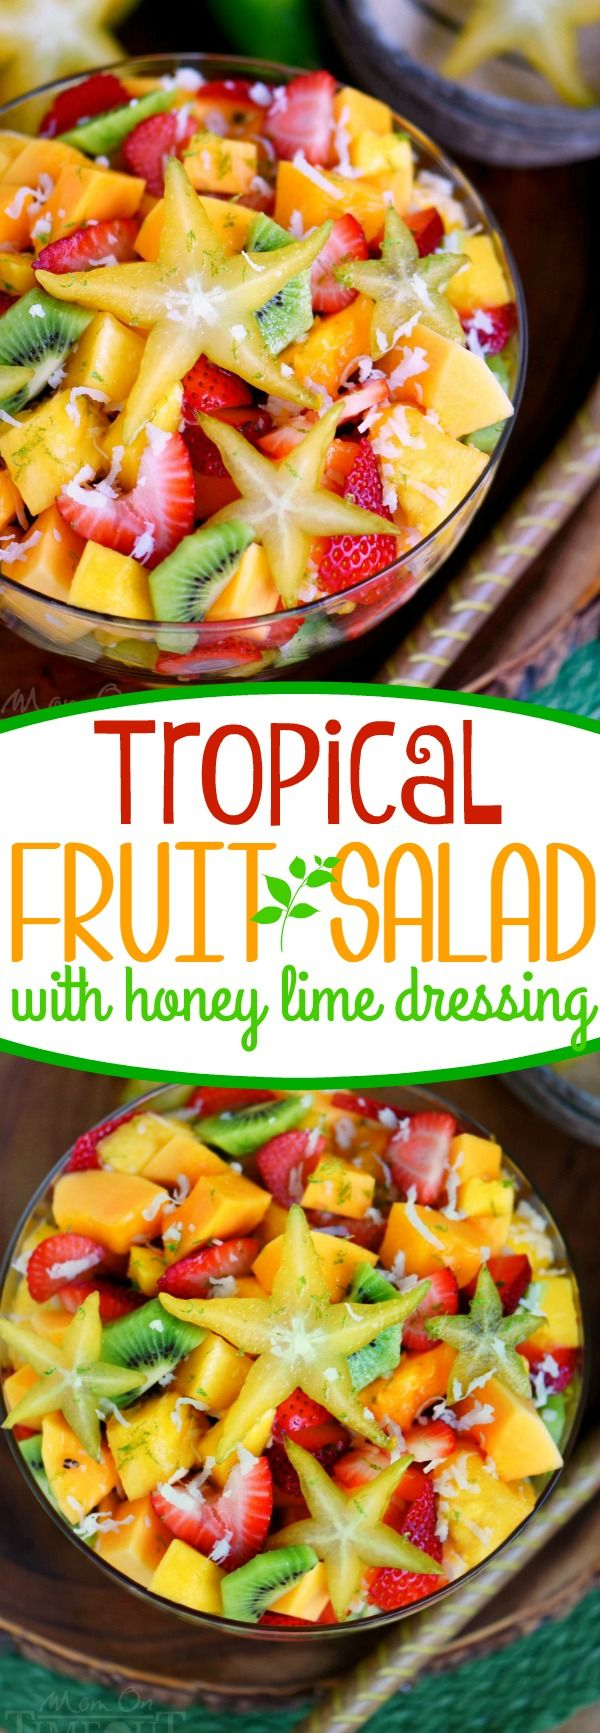 This Tropical Fruit Salad with Honey Lime Dressing is going to be the star of the show! Featuring a variety of tropical fruit and tossed with a honey lime dressing, there's a bright burst of flavors in every bite! This easy salad recipe is bound to become a family favorite!